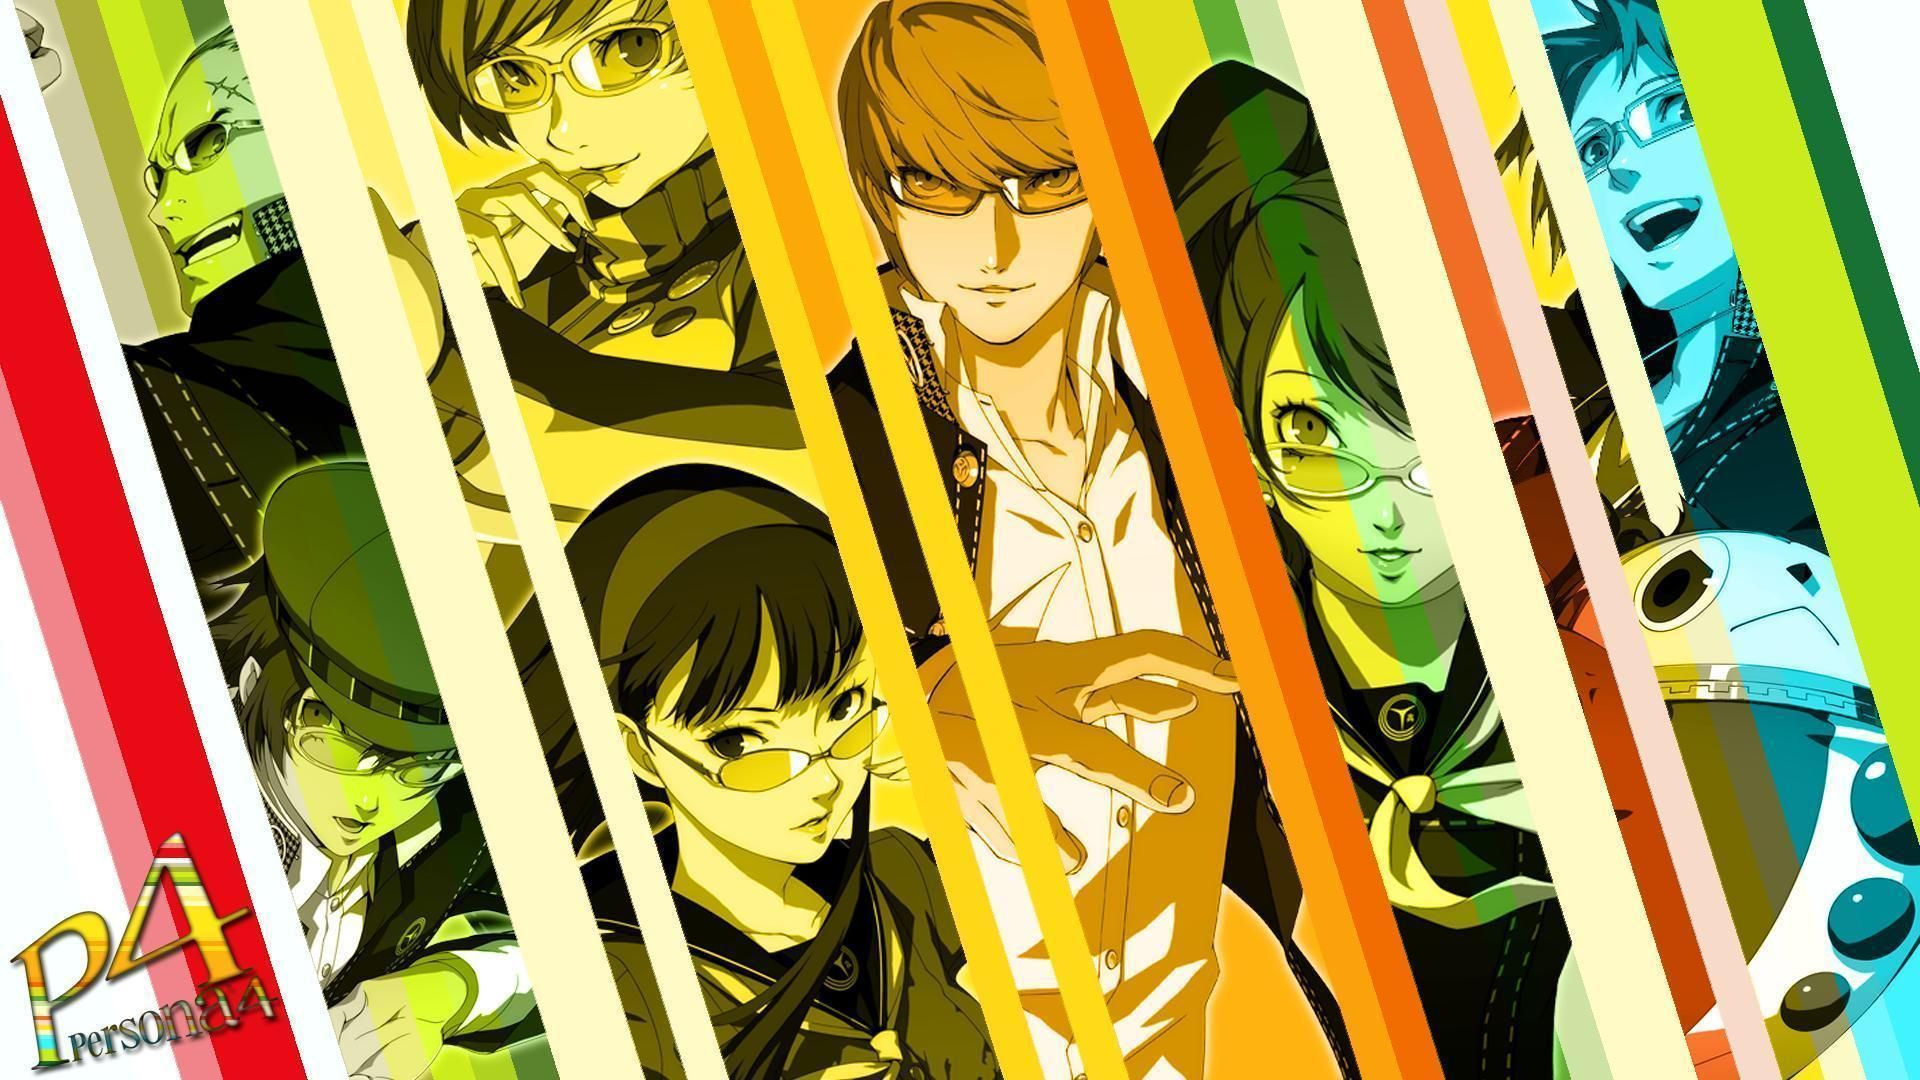 Persona 4 Wallpapers wallpapers 2020 Check more at https